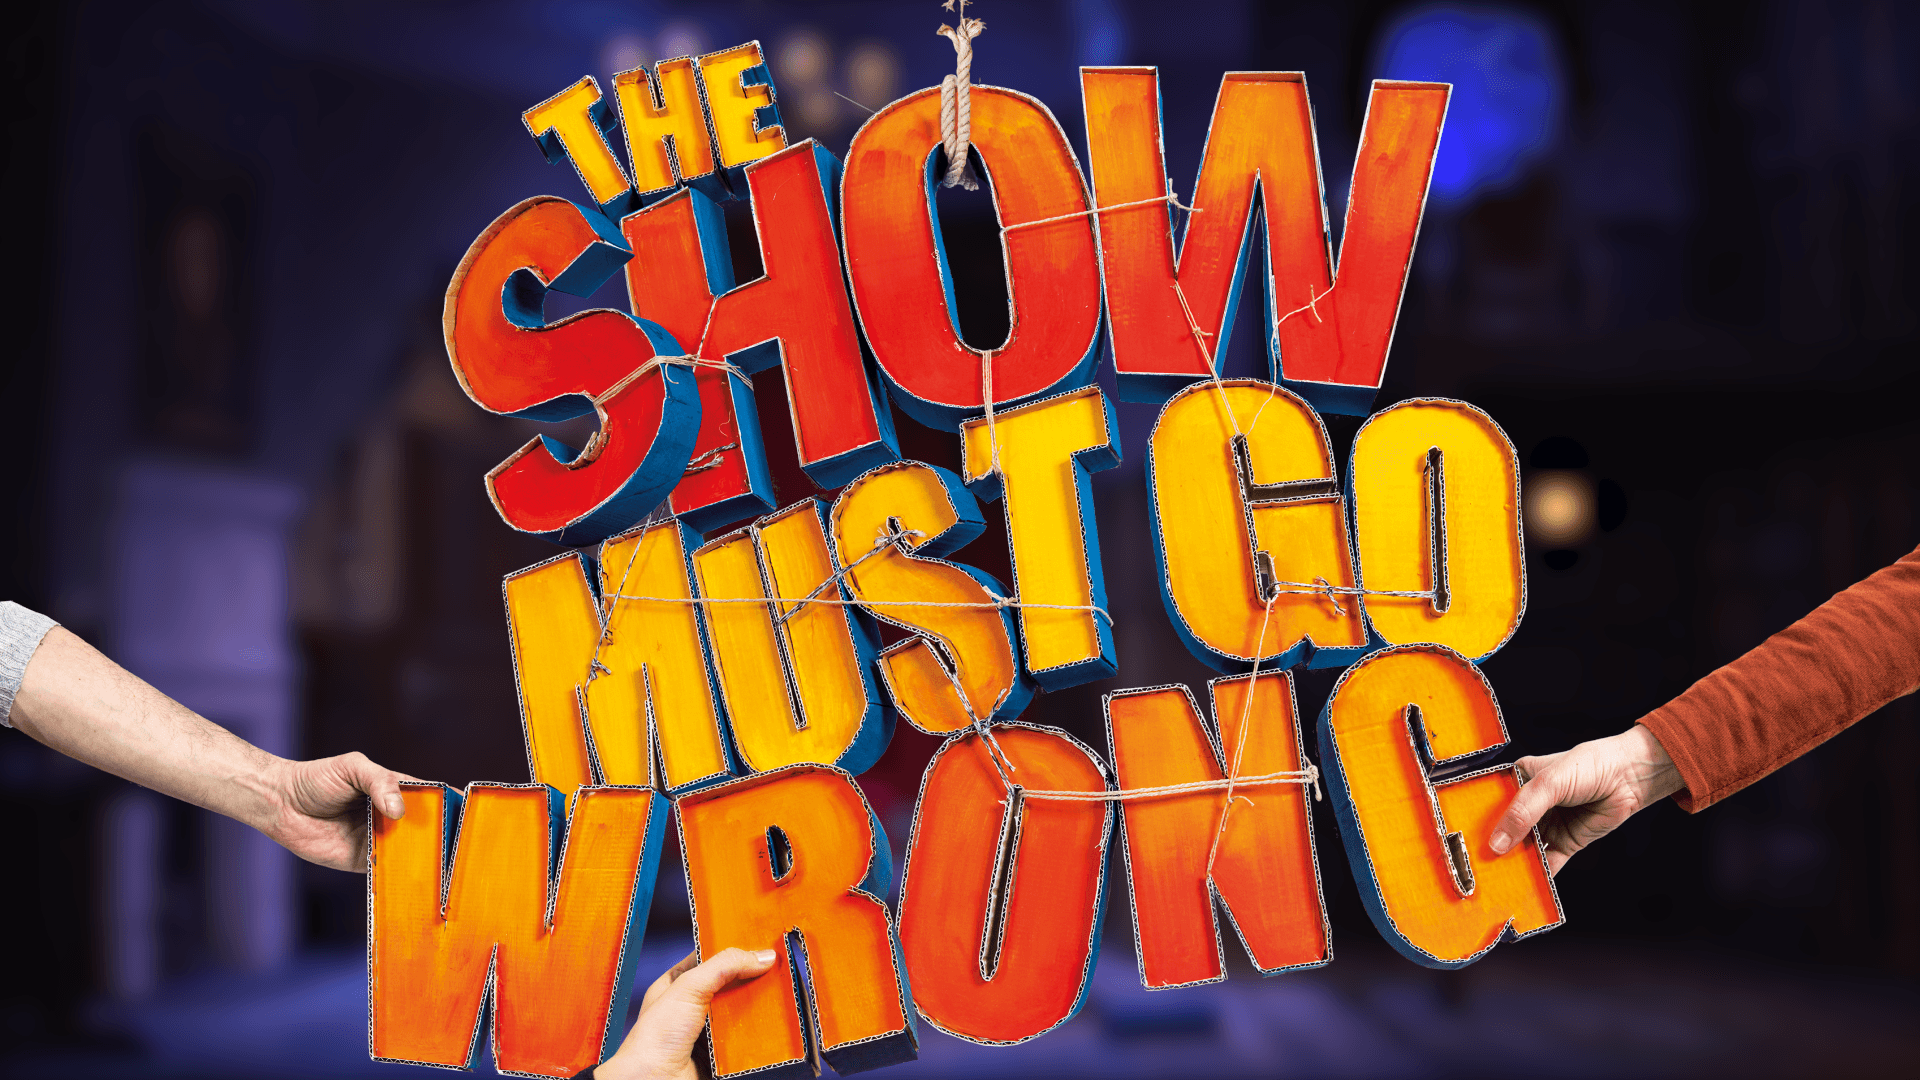 THE SHOW MUST GO WRONG – Theater Trailer